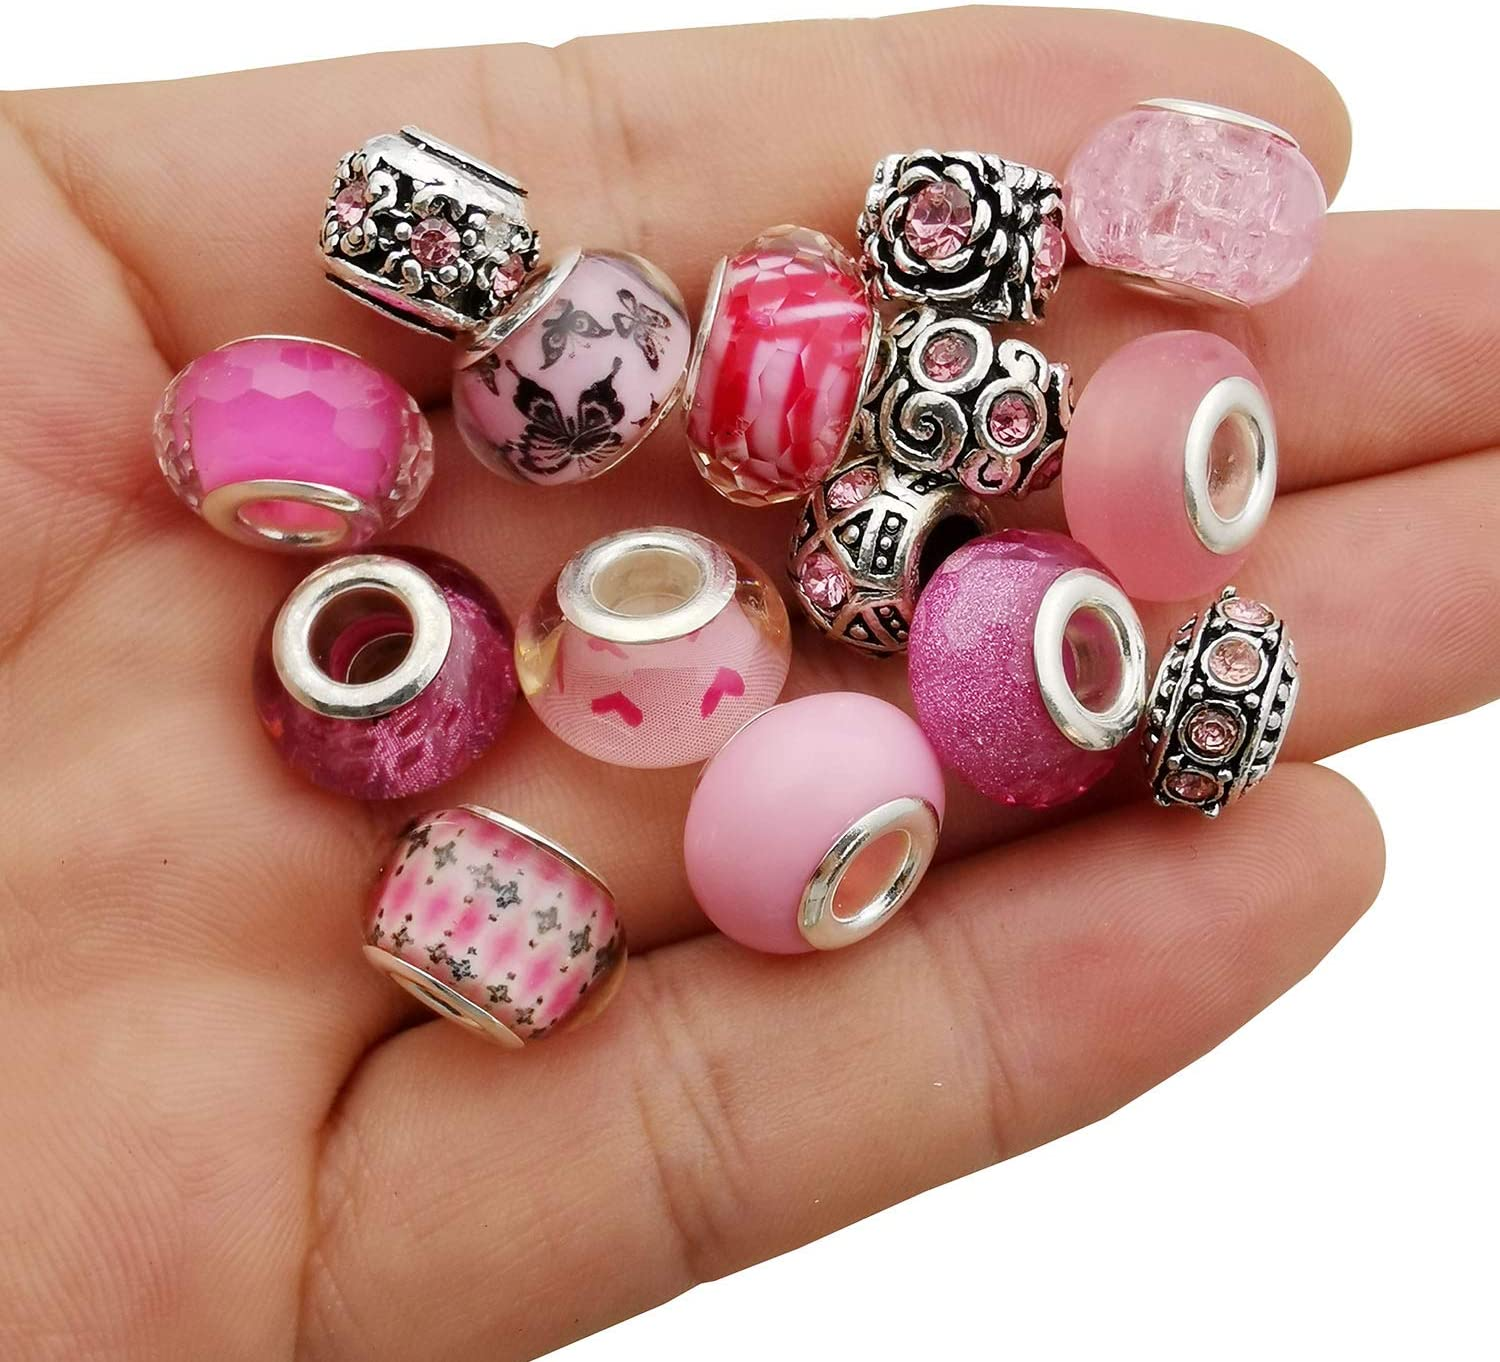 30pcs Assorted Pink European Beads Large Holes Spacer Beads Rhinestone Metal Charms Supplies for Bracelet Necklace Jewelry Making (M310)